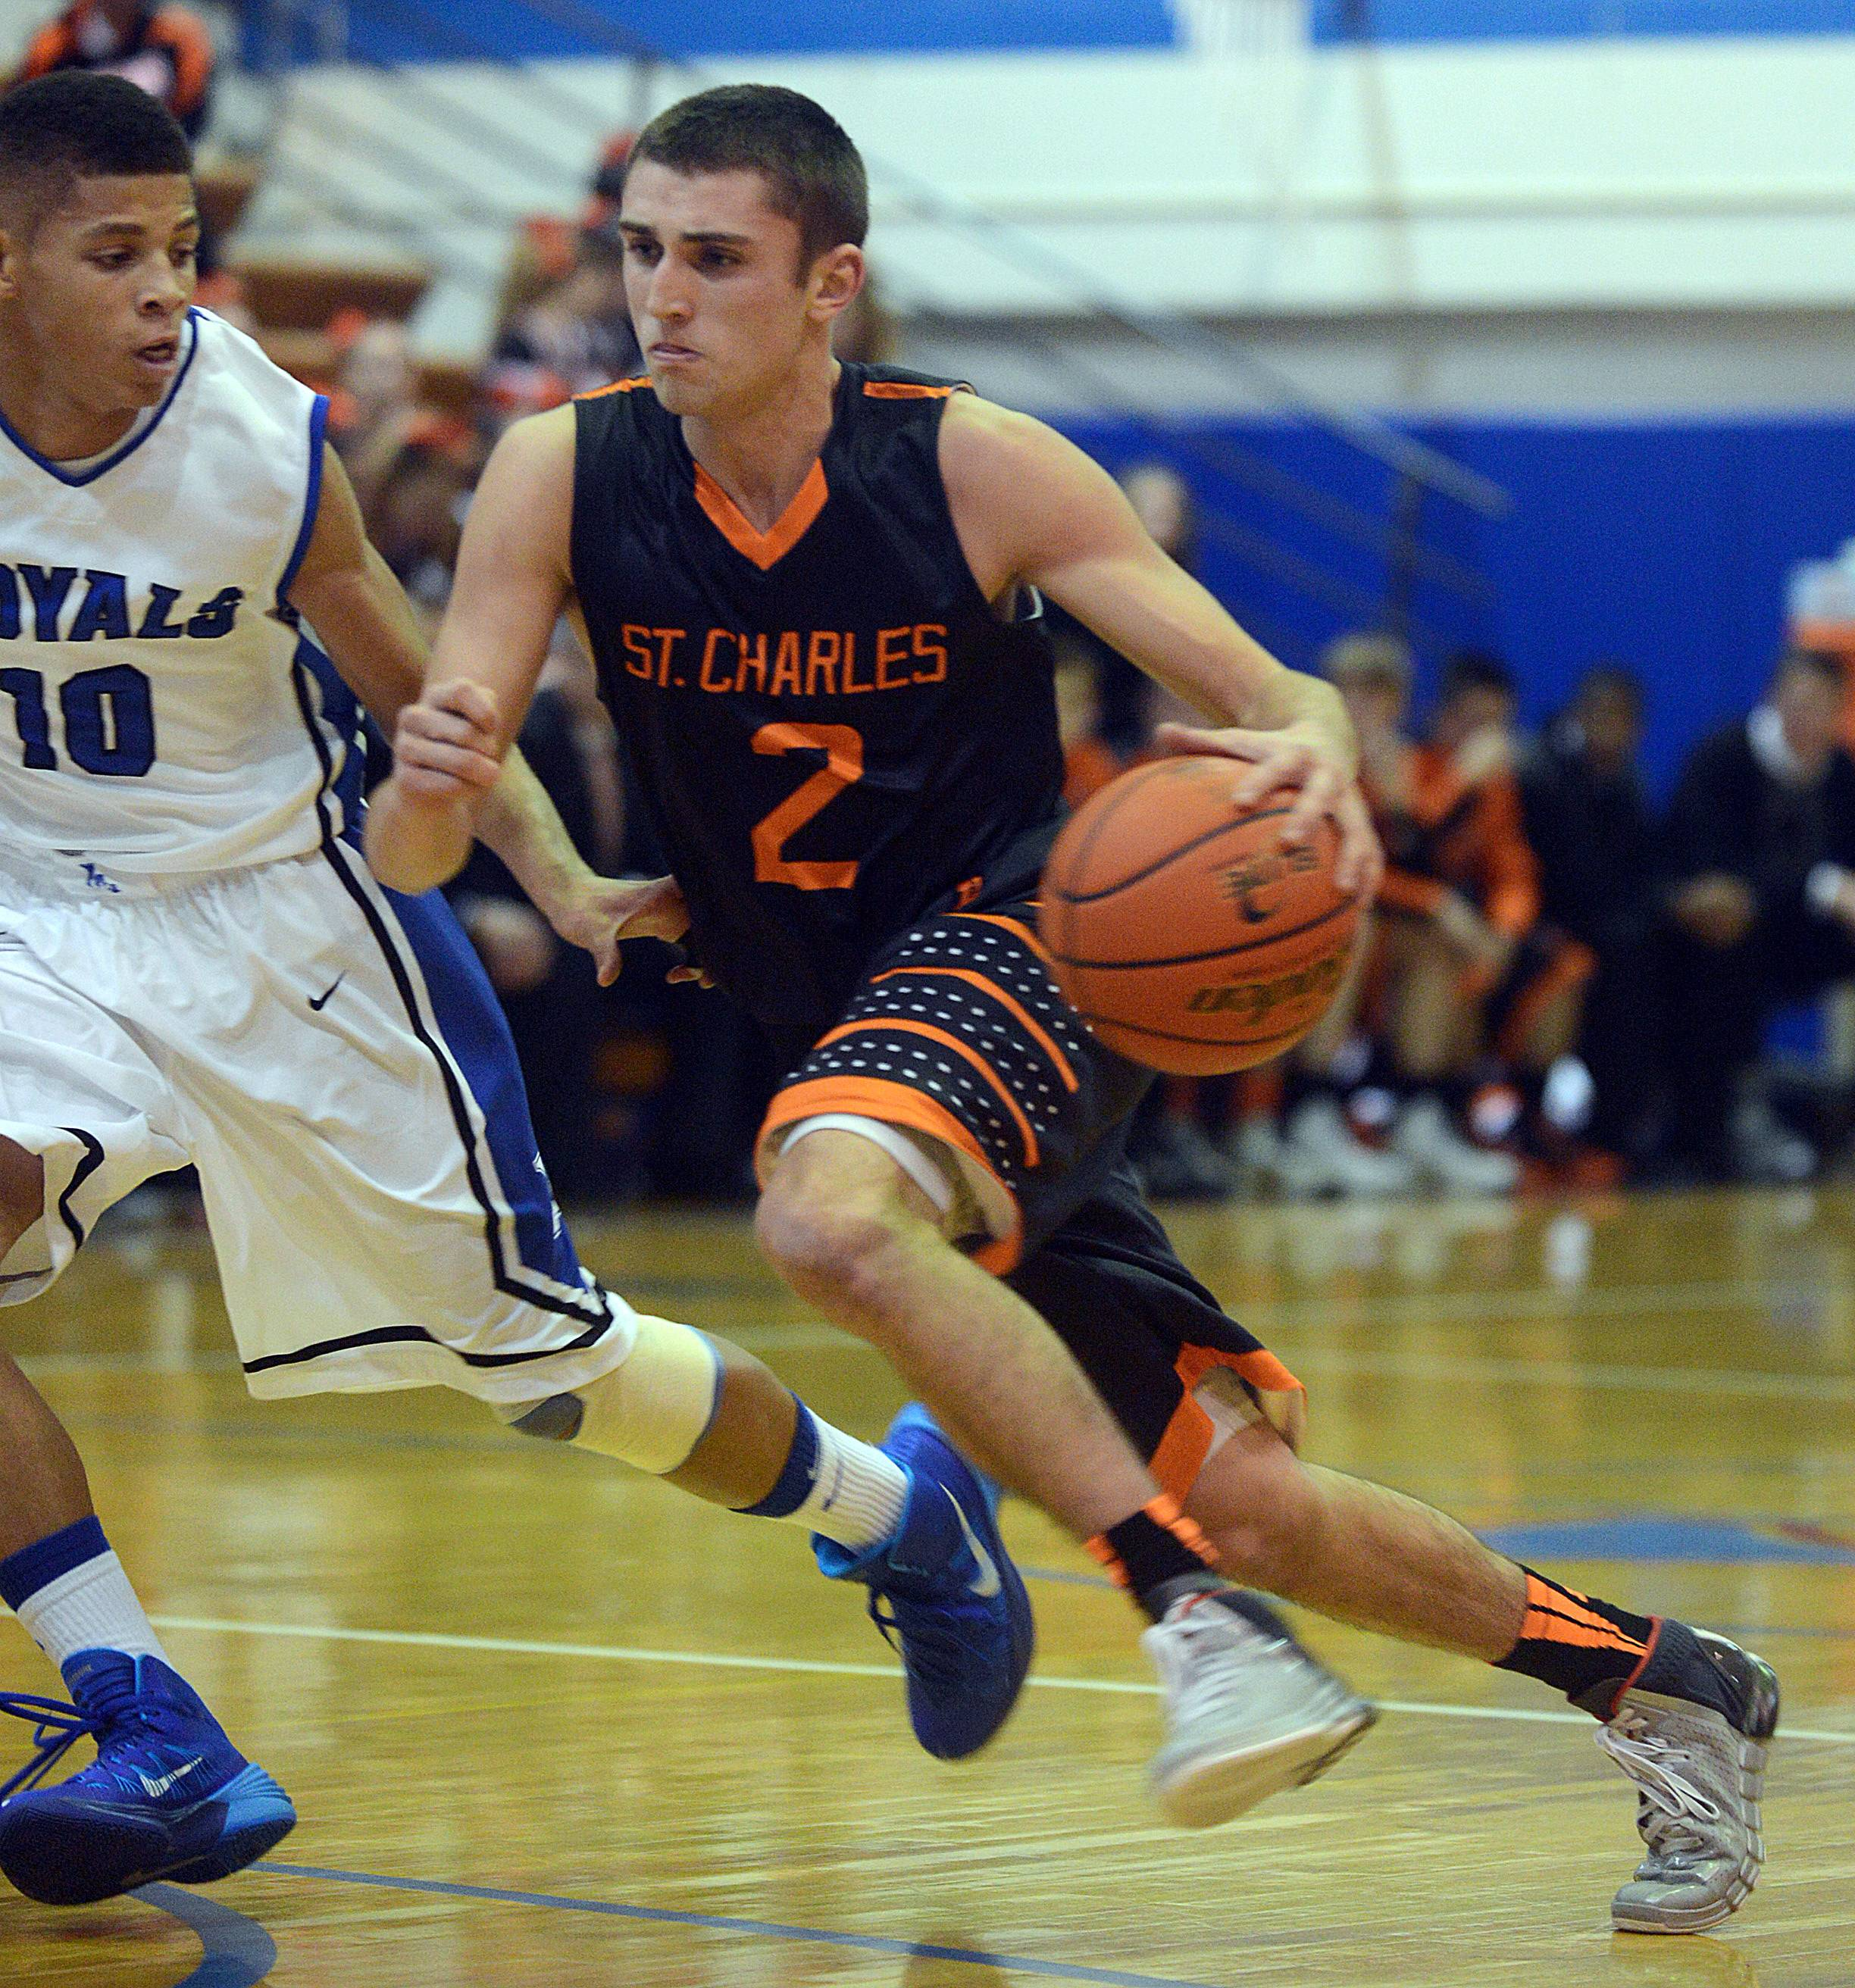 St. Charles East's Dom Adduci has been a 3-year standout for the Saints who hopes to keep his career going when they play St. Charles North on Wednesday night.